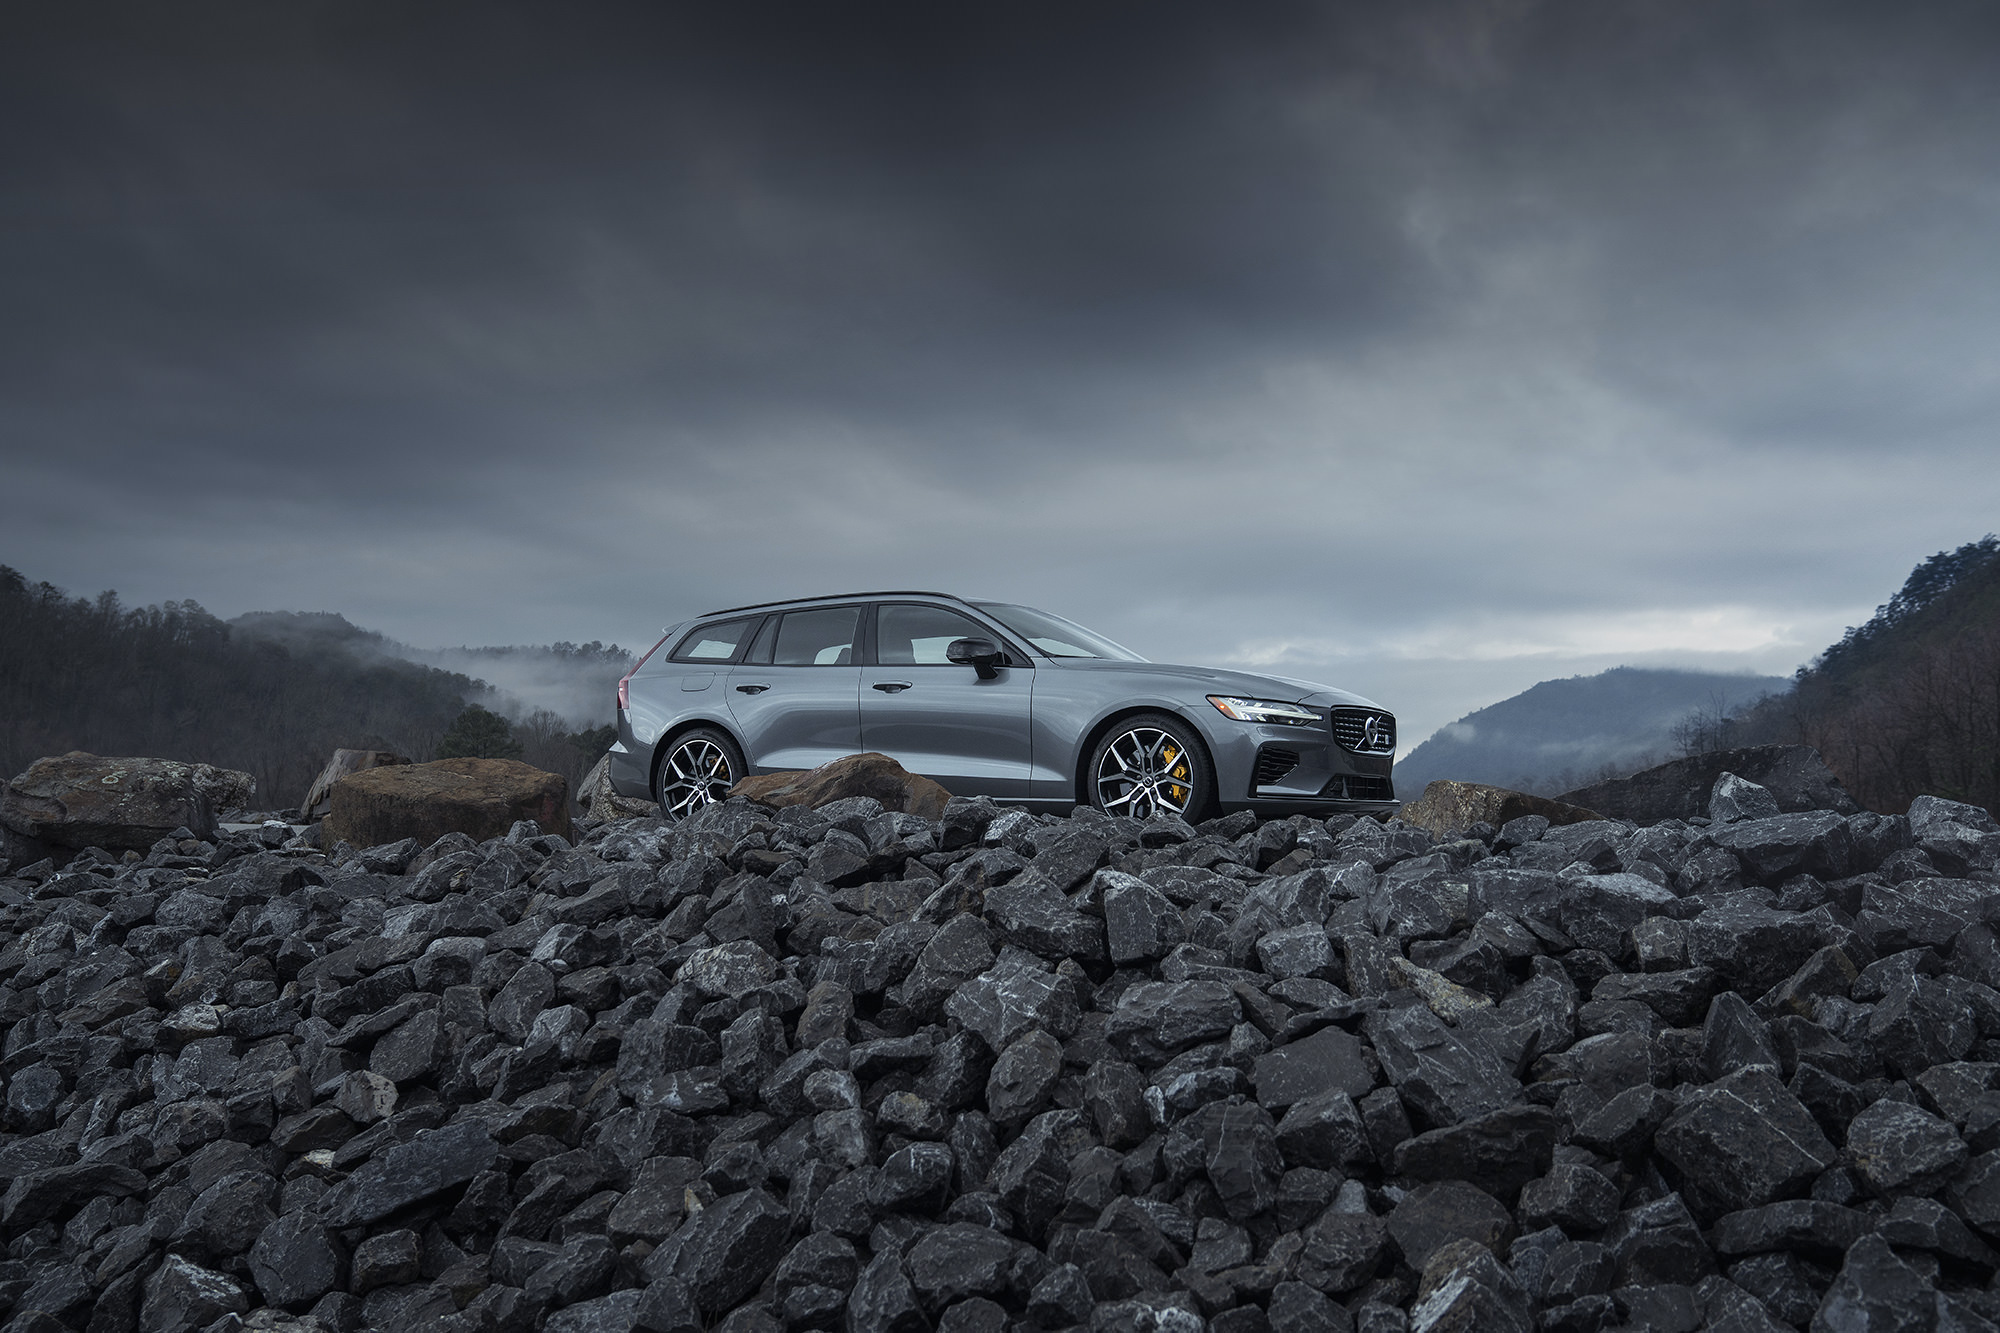 The Volvo V60 Polestar Engineered Shows Why Wagons Are Worth Saving. Photographed for Road & Track Magazine.